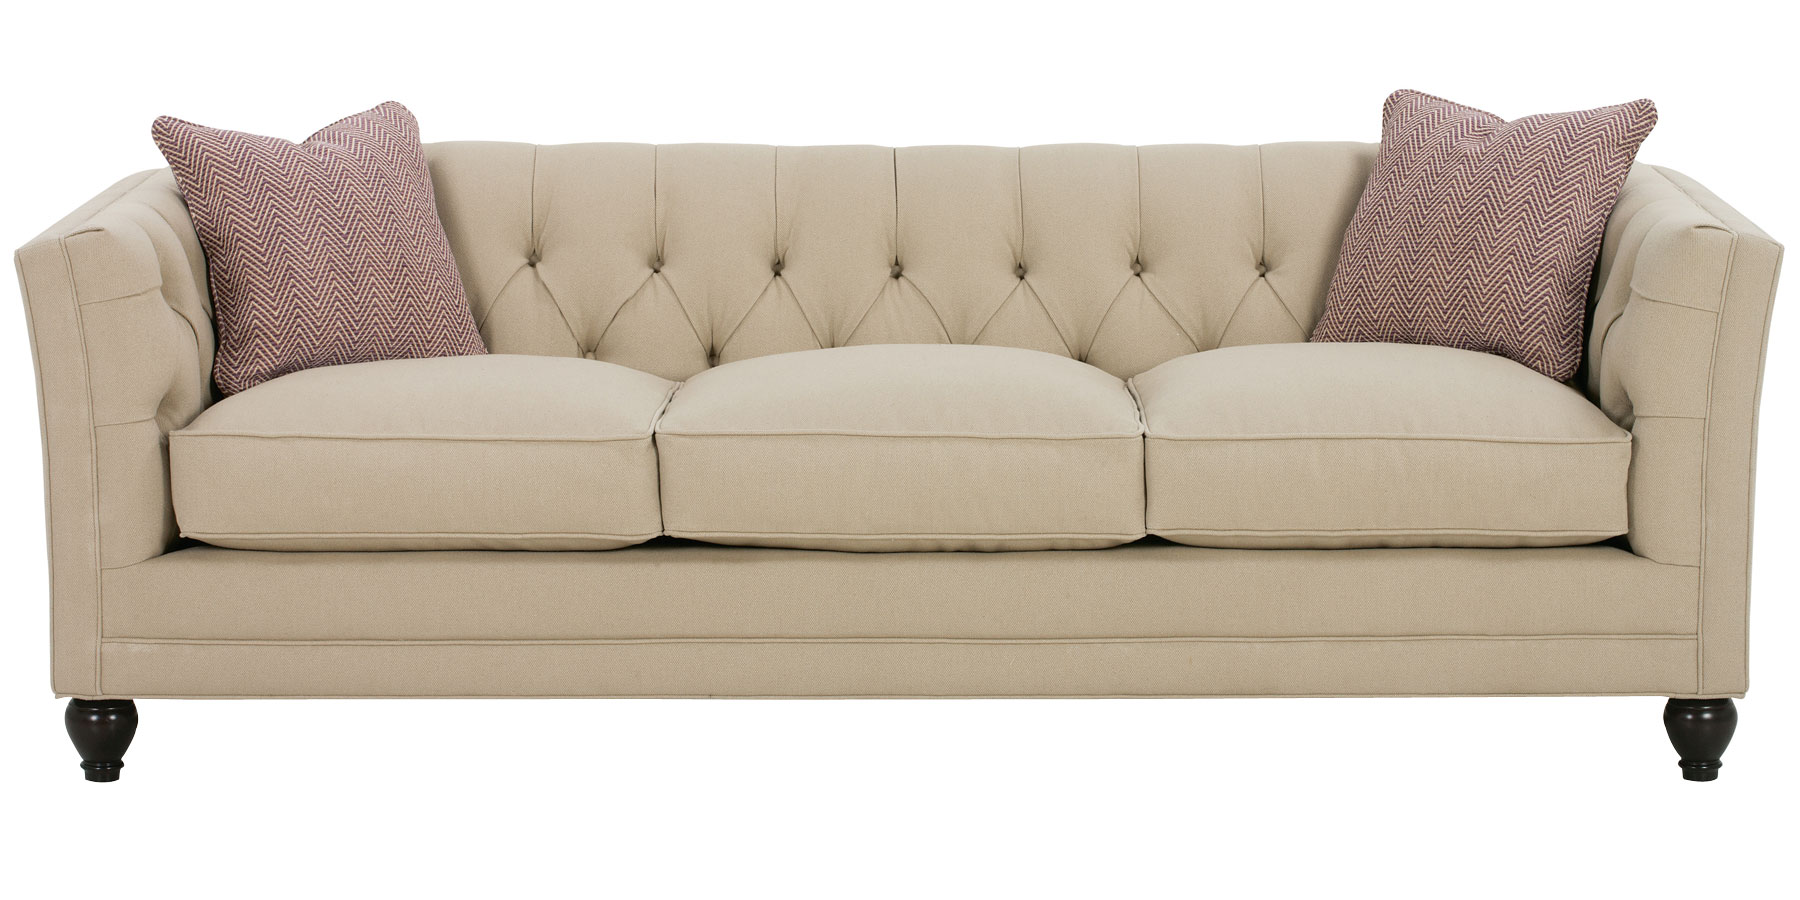 Tufted back fabric sofa collection club furniture for Fabric couches for sale